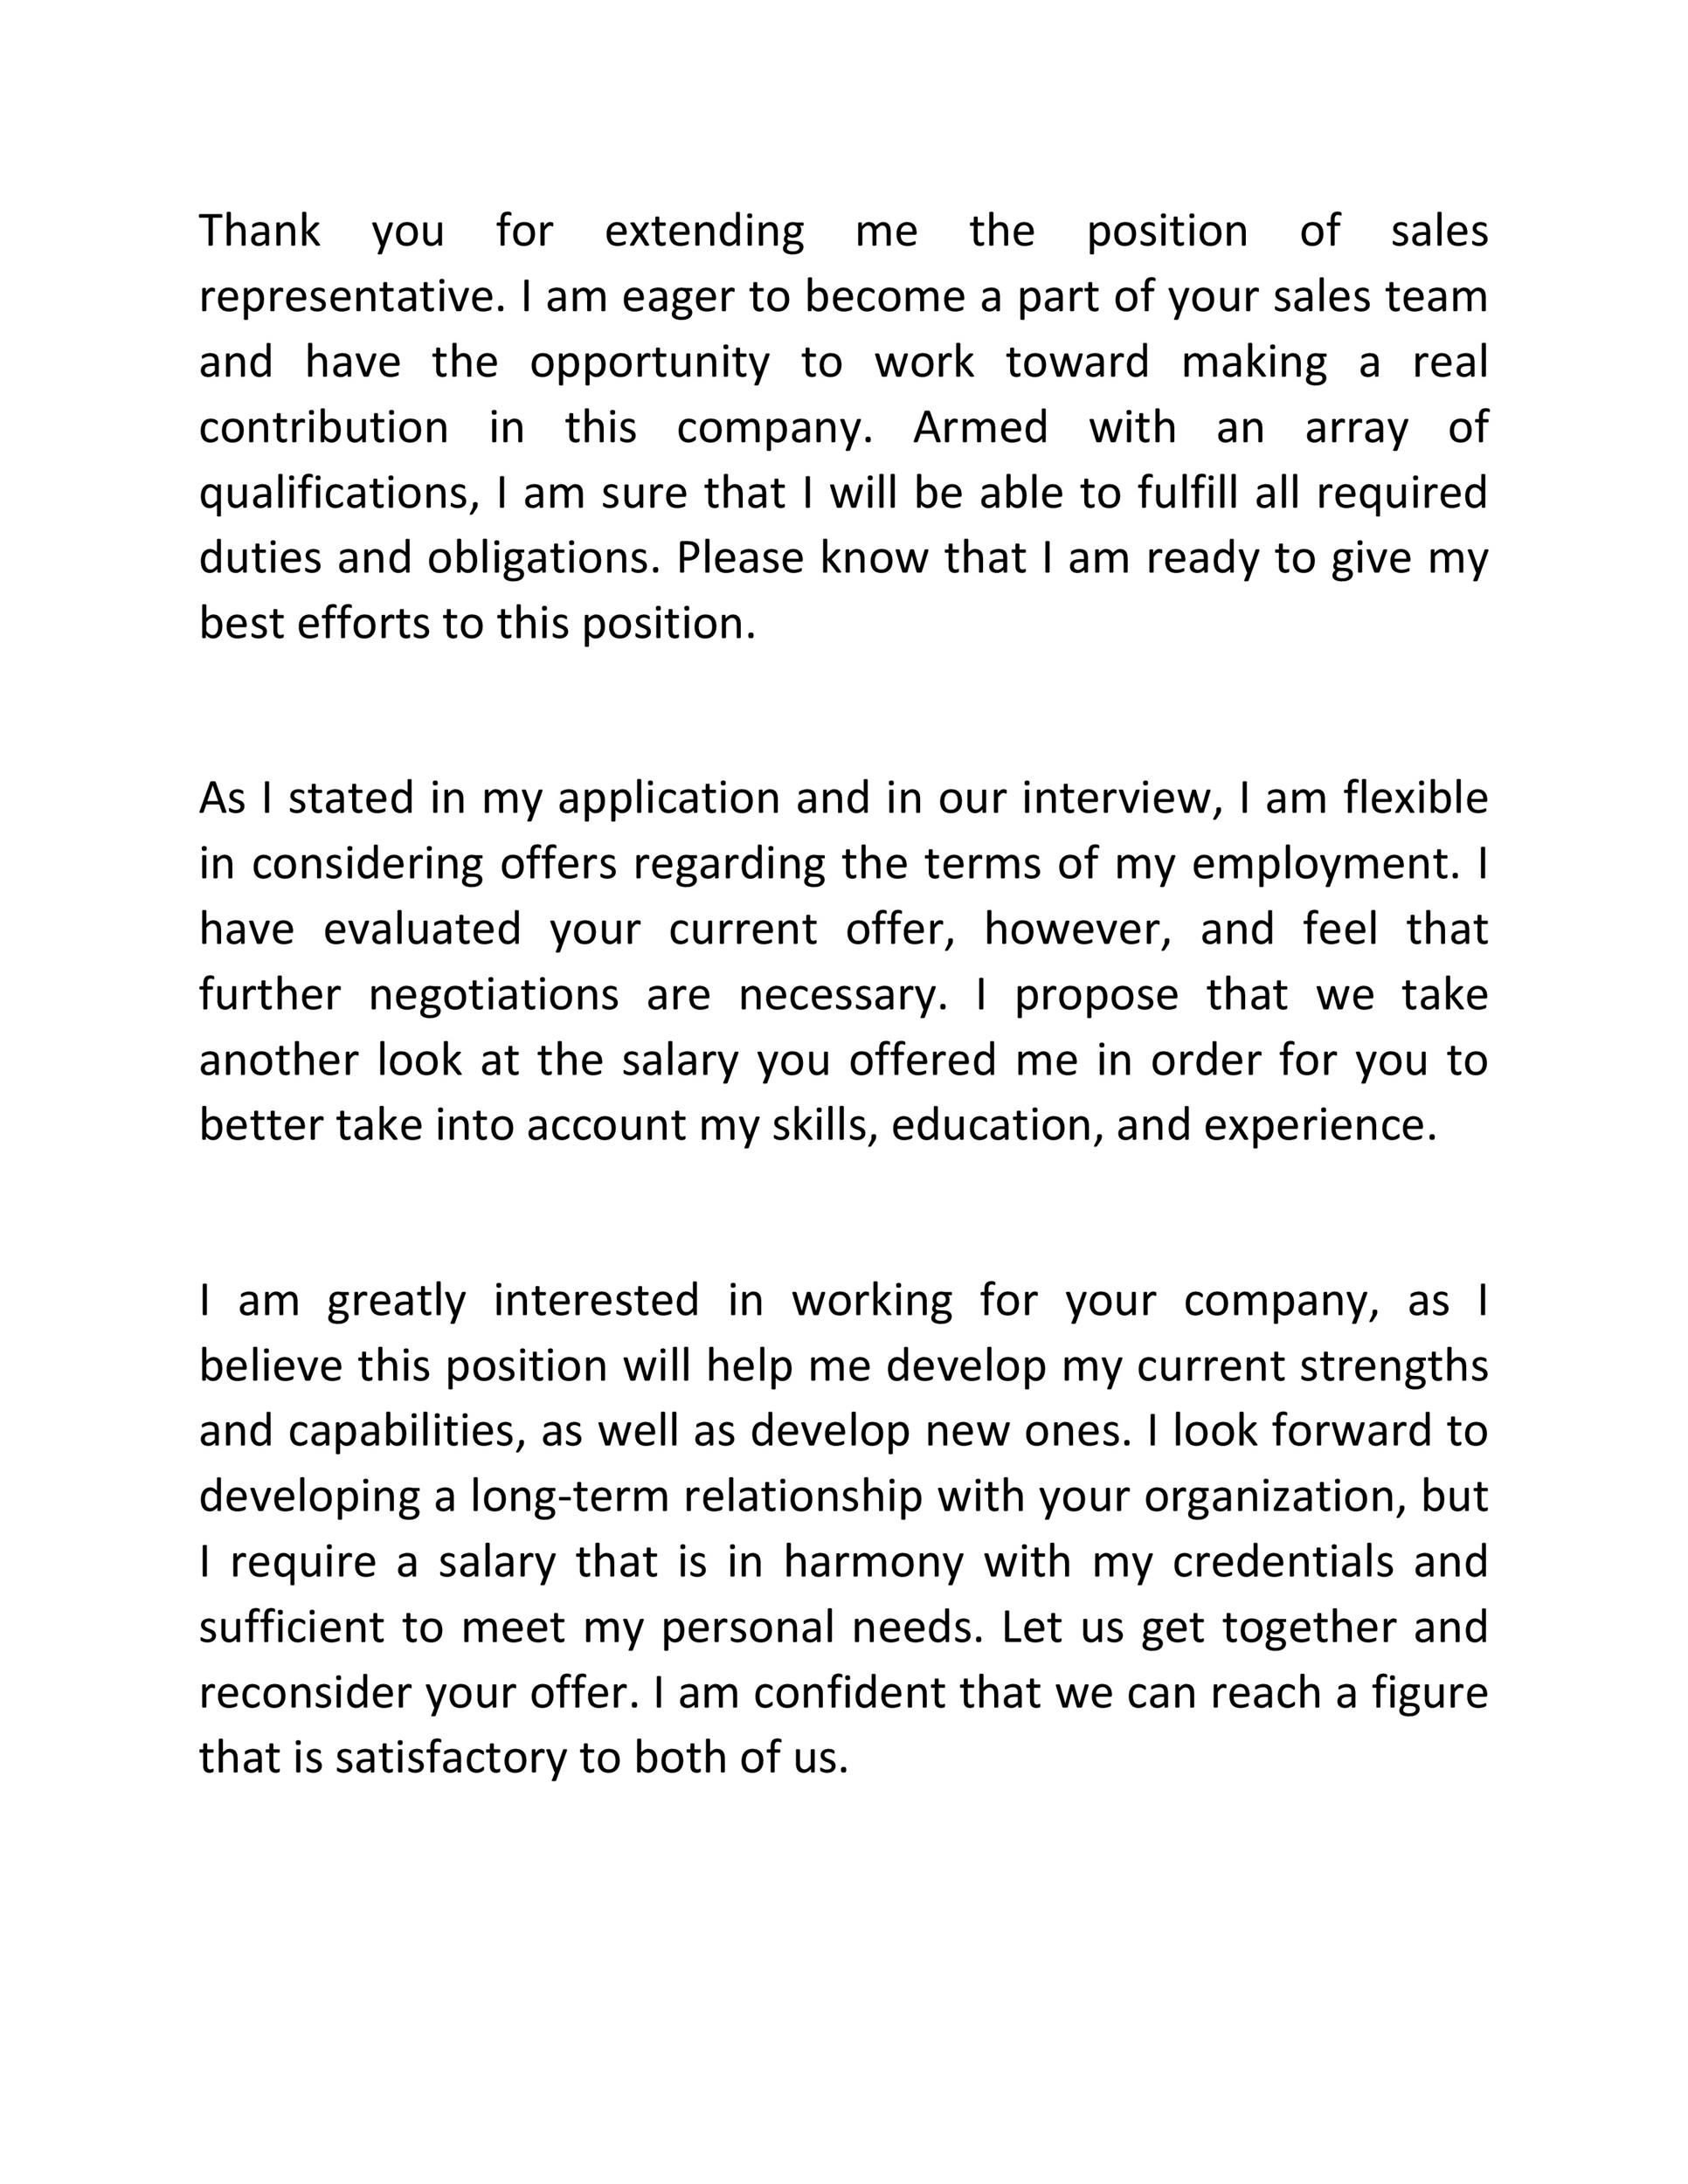 Free salary negotiation letter 42